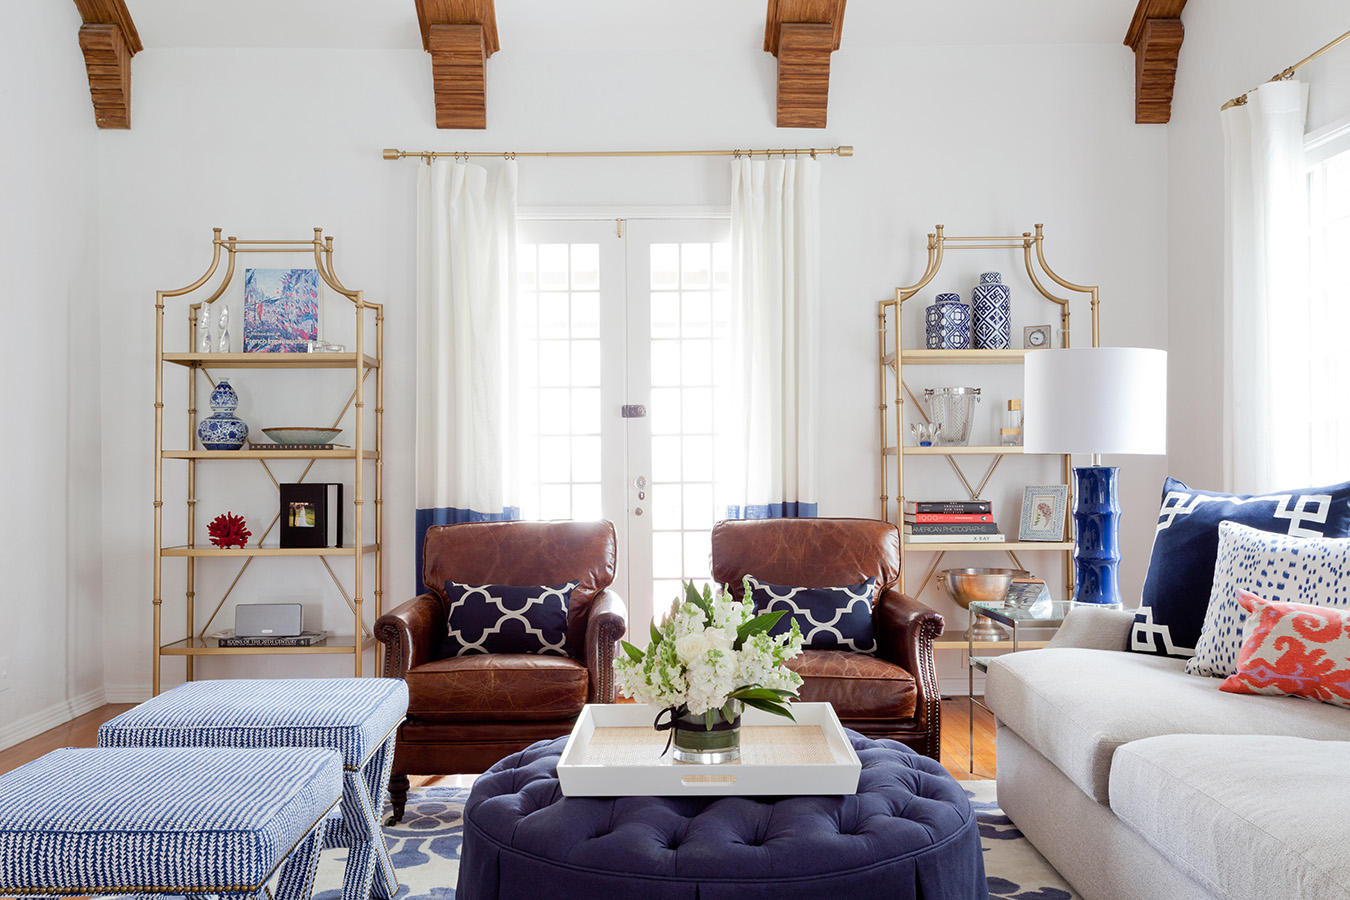 a working mom s home decorating project havenly one of the first things we ask every client before starting a home decorating project is what do you dislike about your current space